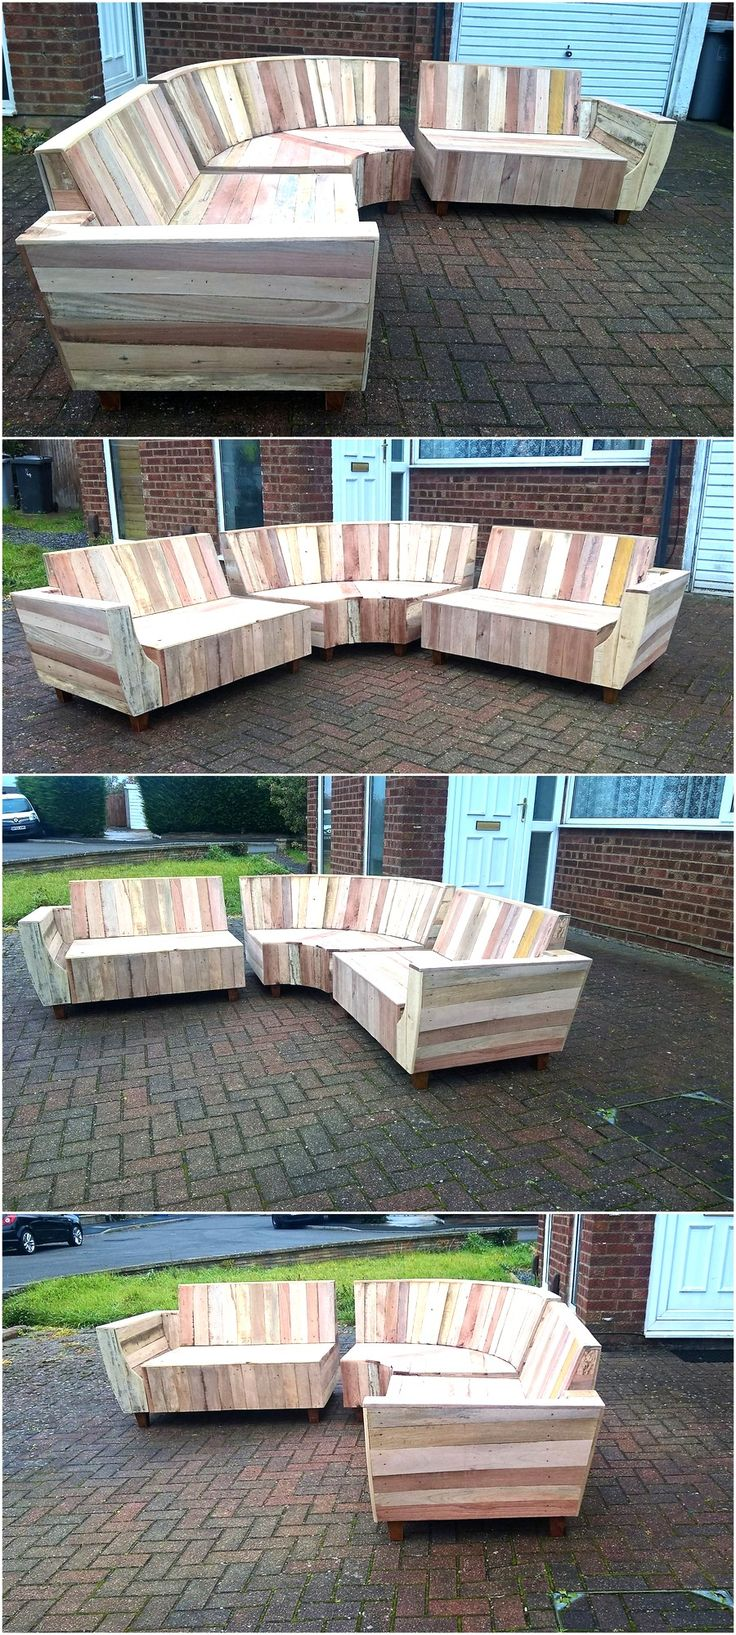 17 Best ideas about Outdoor Couch on Pinterest